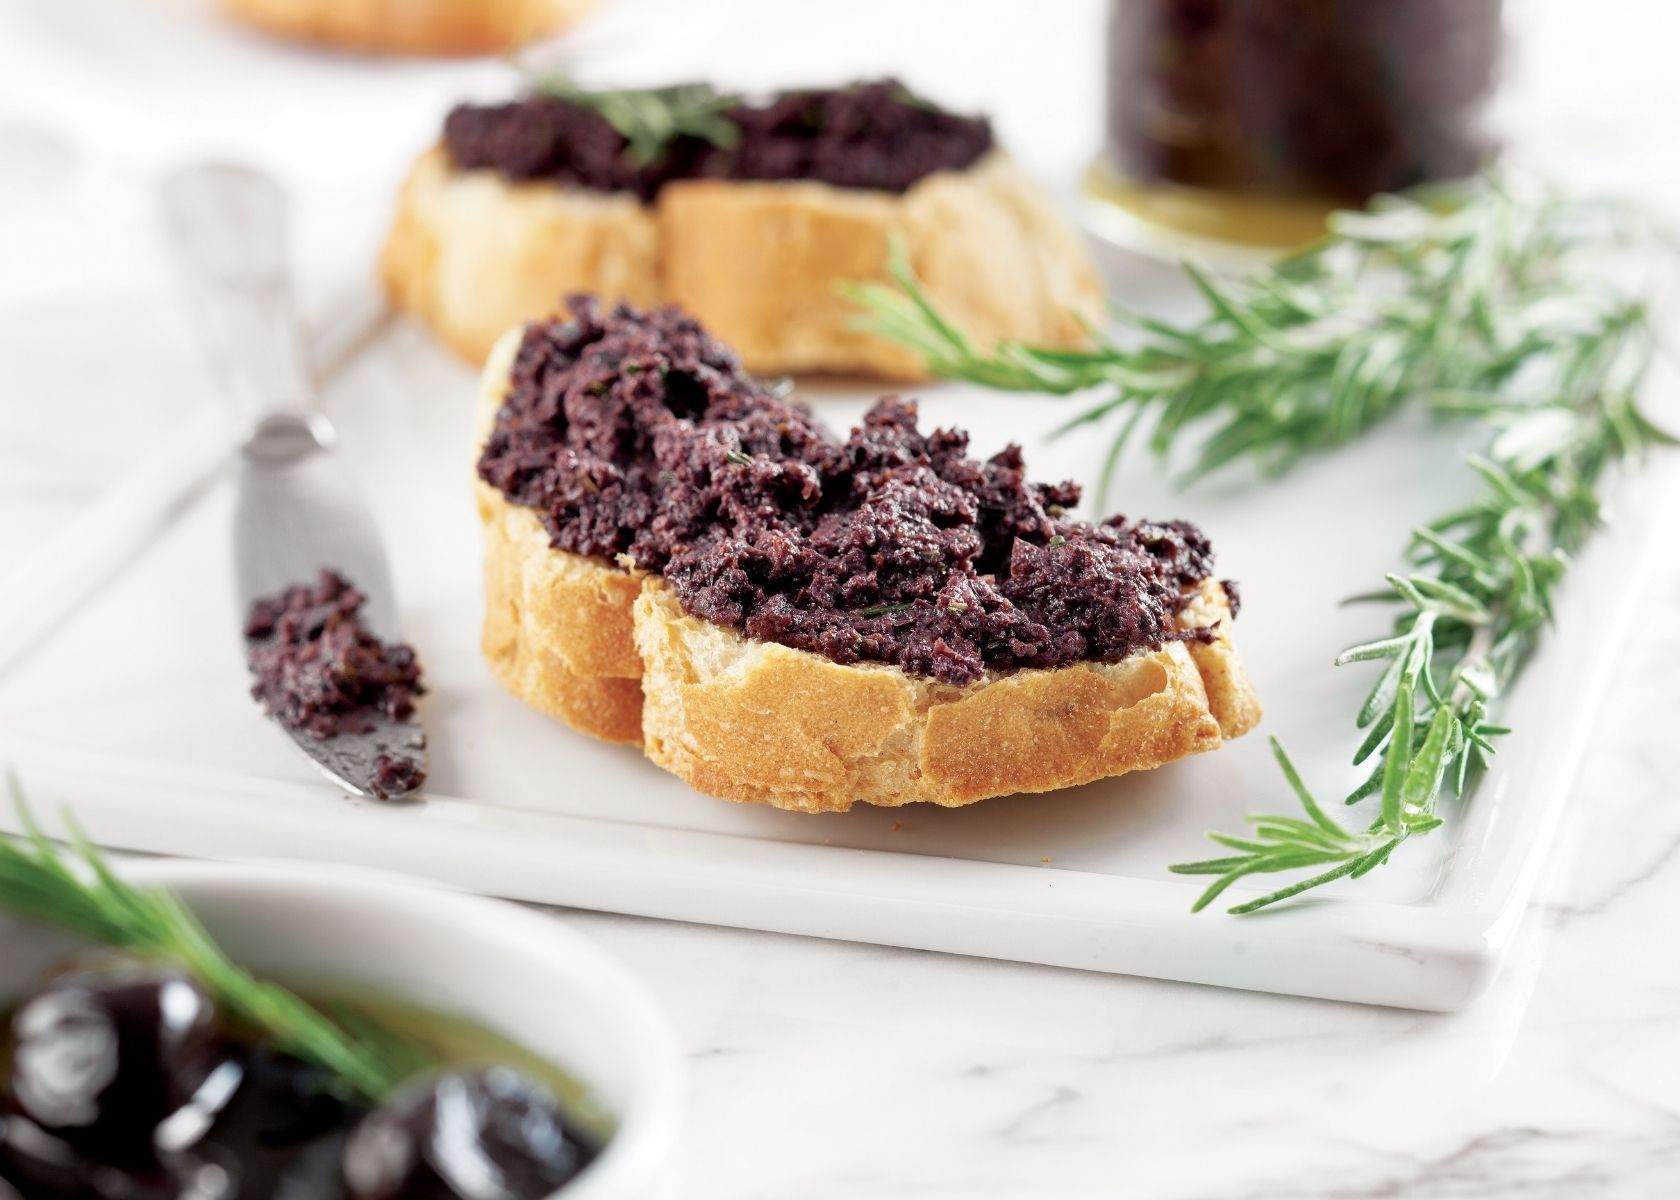 Toast with pureed olives on top next to sprigs of thyme all on white plate.